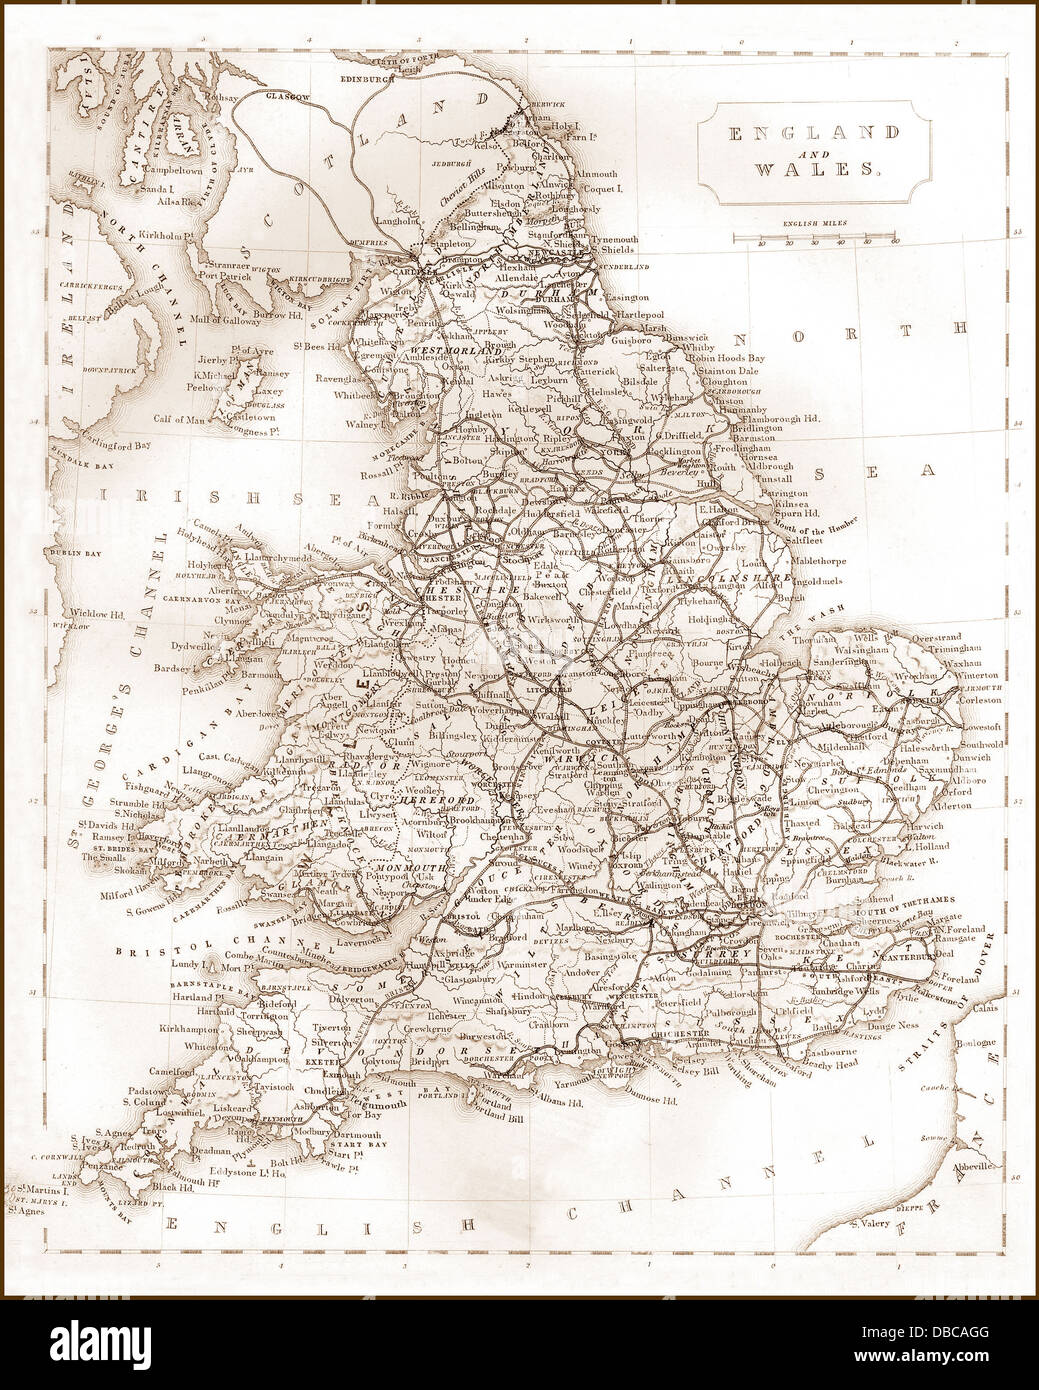 Map Of Victorian England.1840s Victorian Map Of Railways In England And Wales Stock Photo